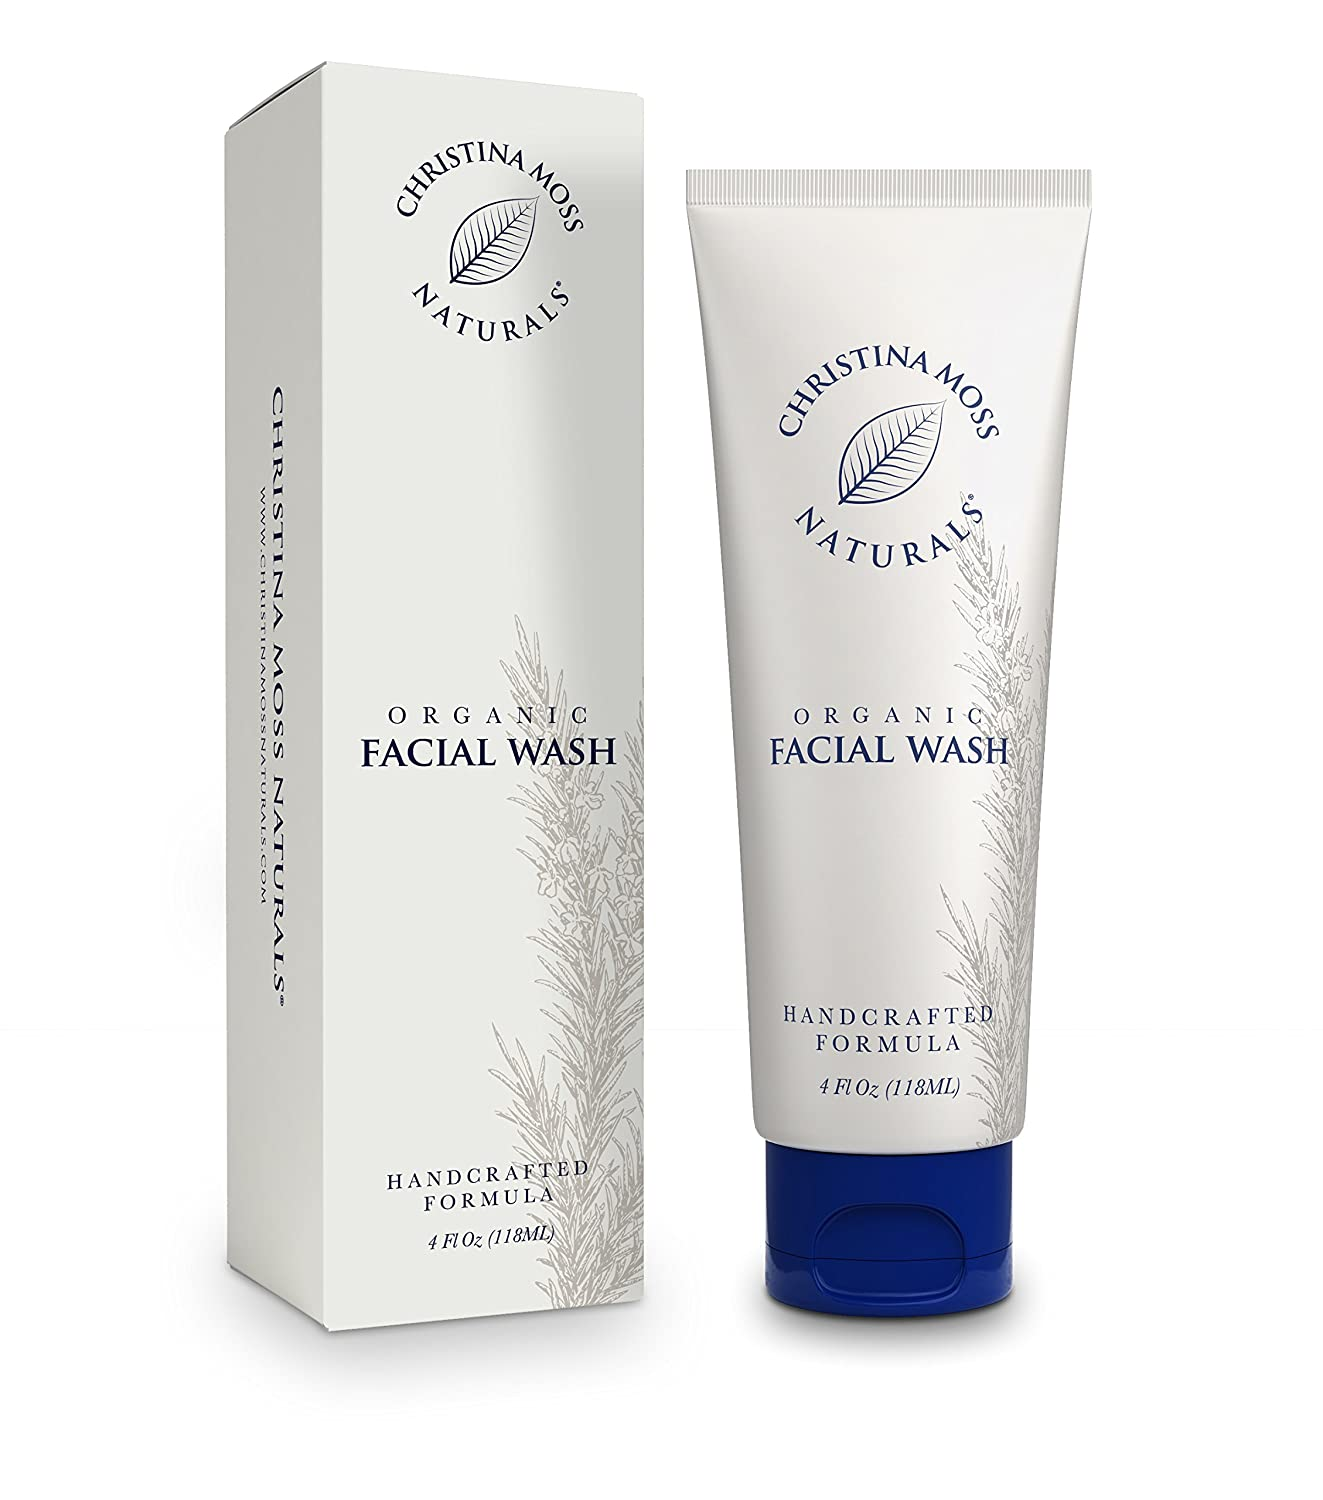 Face Wash - Facial Cleanser Made With Organic & Natural Ingredients